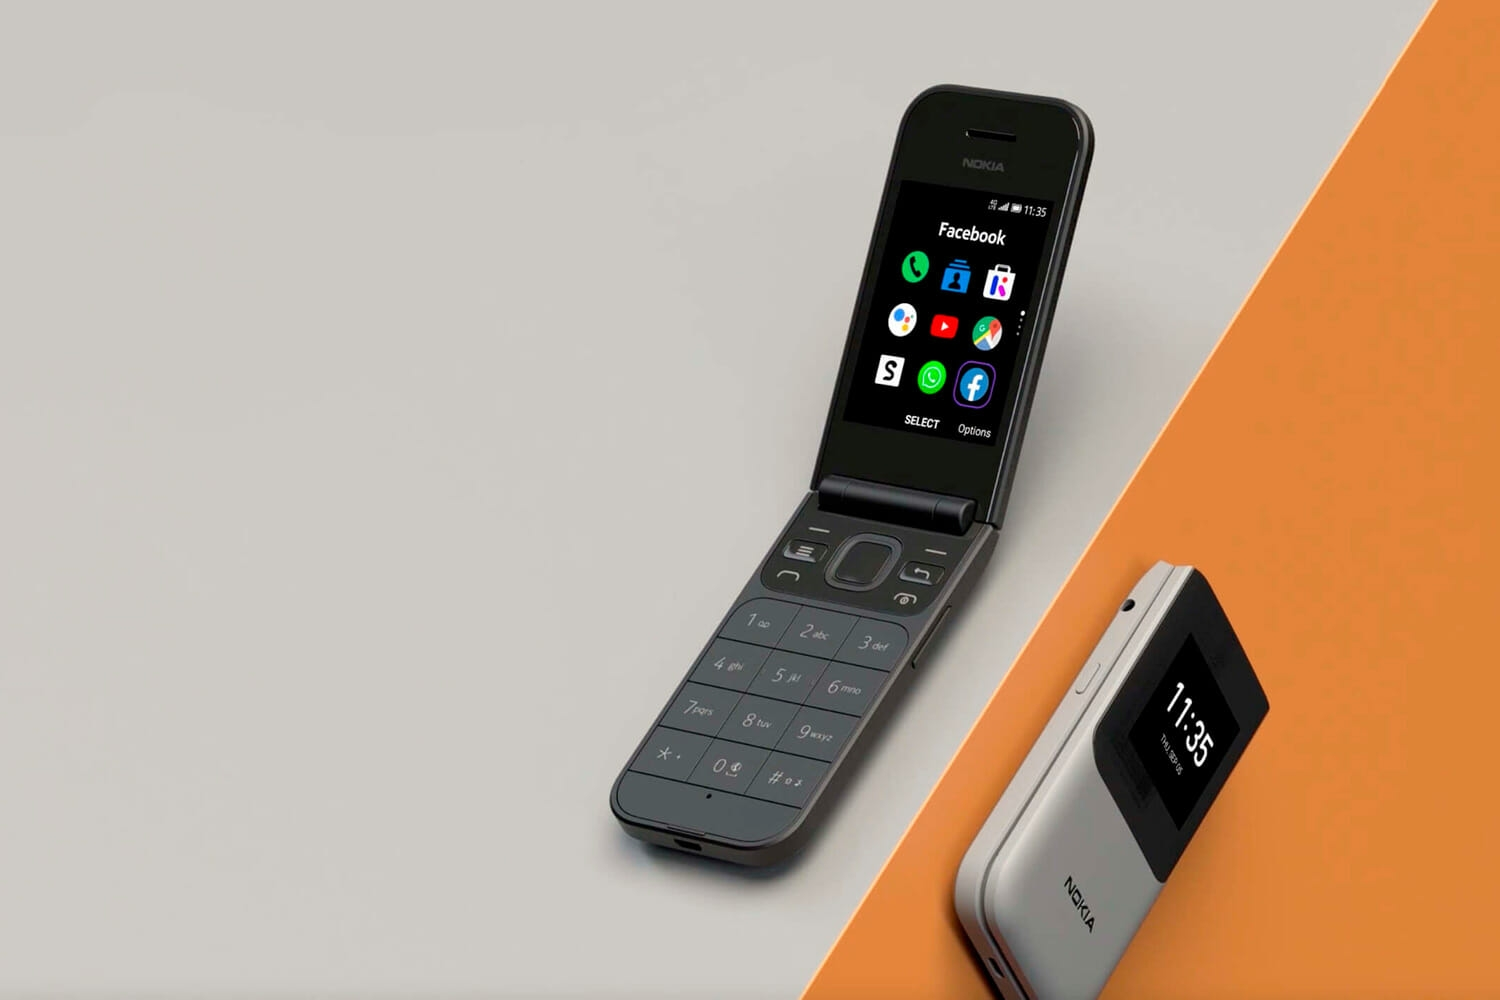 IFA low cost phones at $ 20 are presented at IFA 2